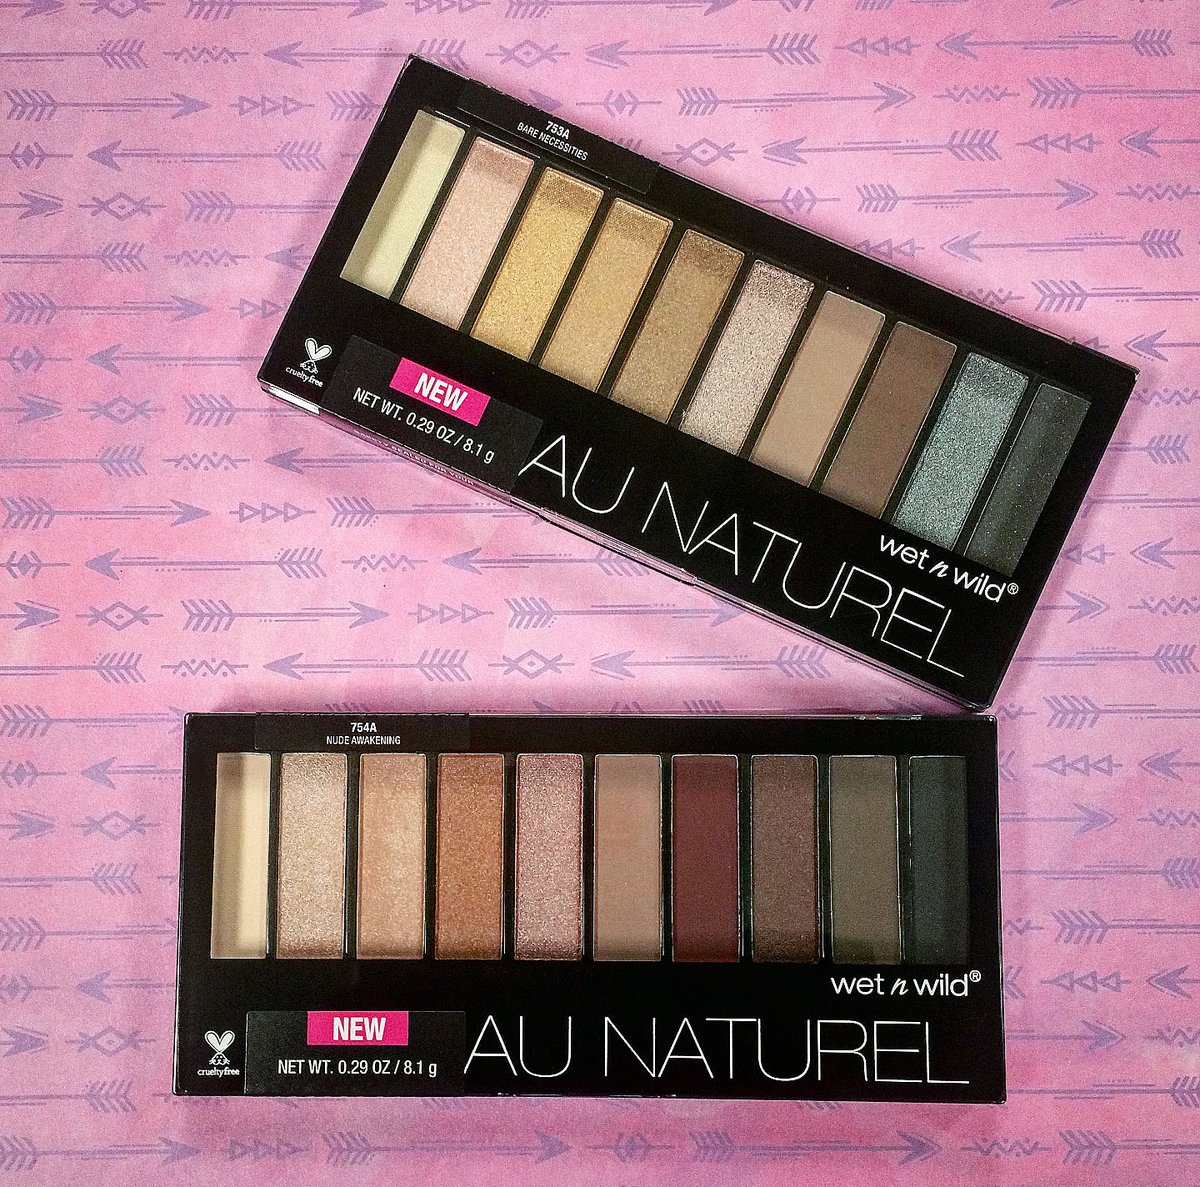 Wet N Wild Beauty On Twitter Our Au Natural 10 Pan Palettes Will Naturel Palette Be Struttin Down The Aisle Walmart Soon Https Tco Sk0cl3zqbi